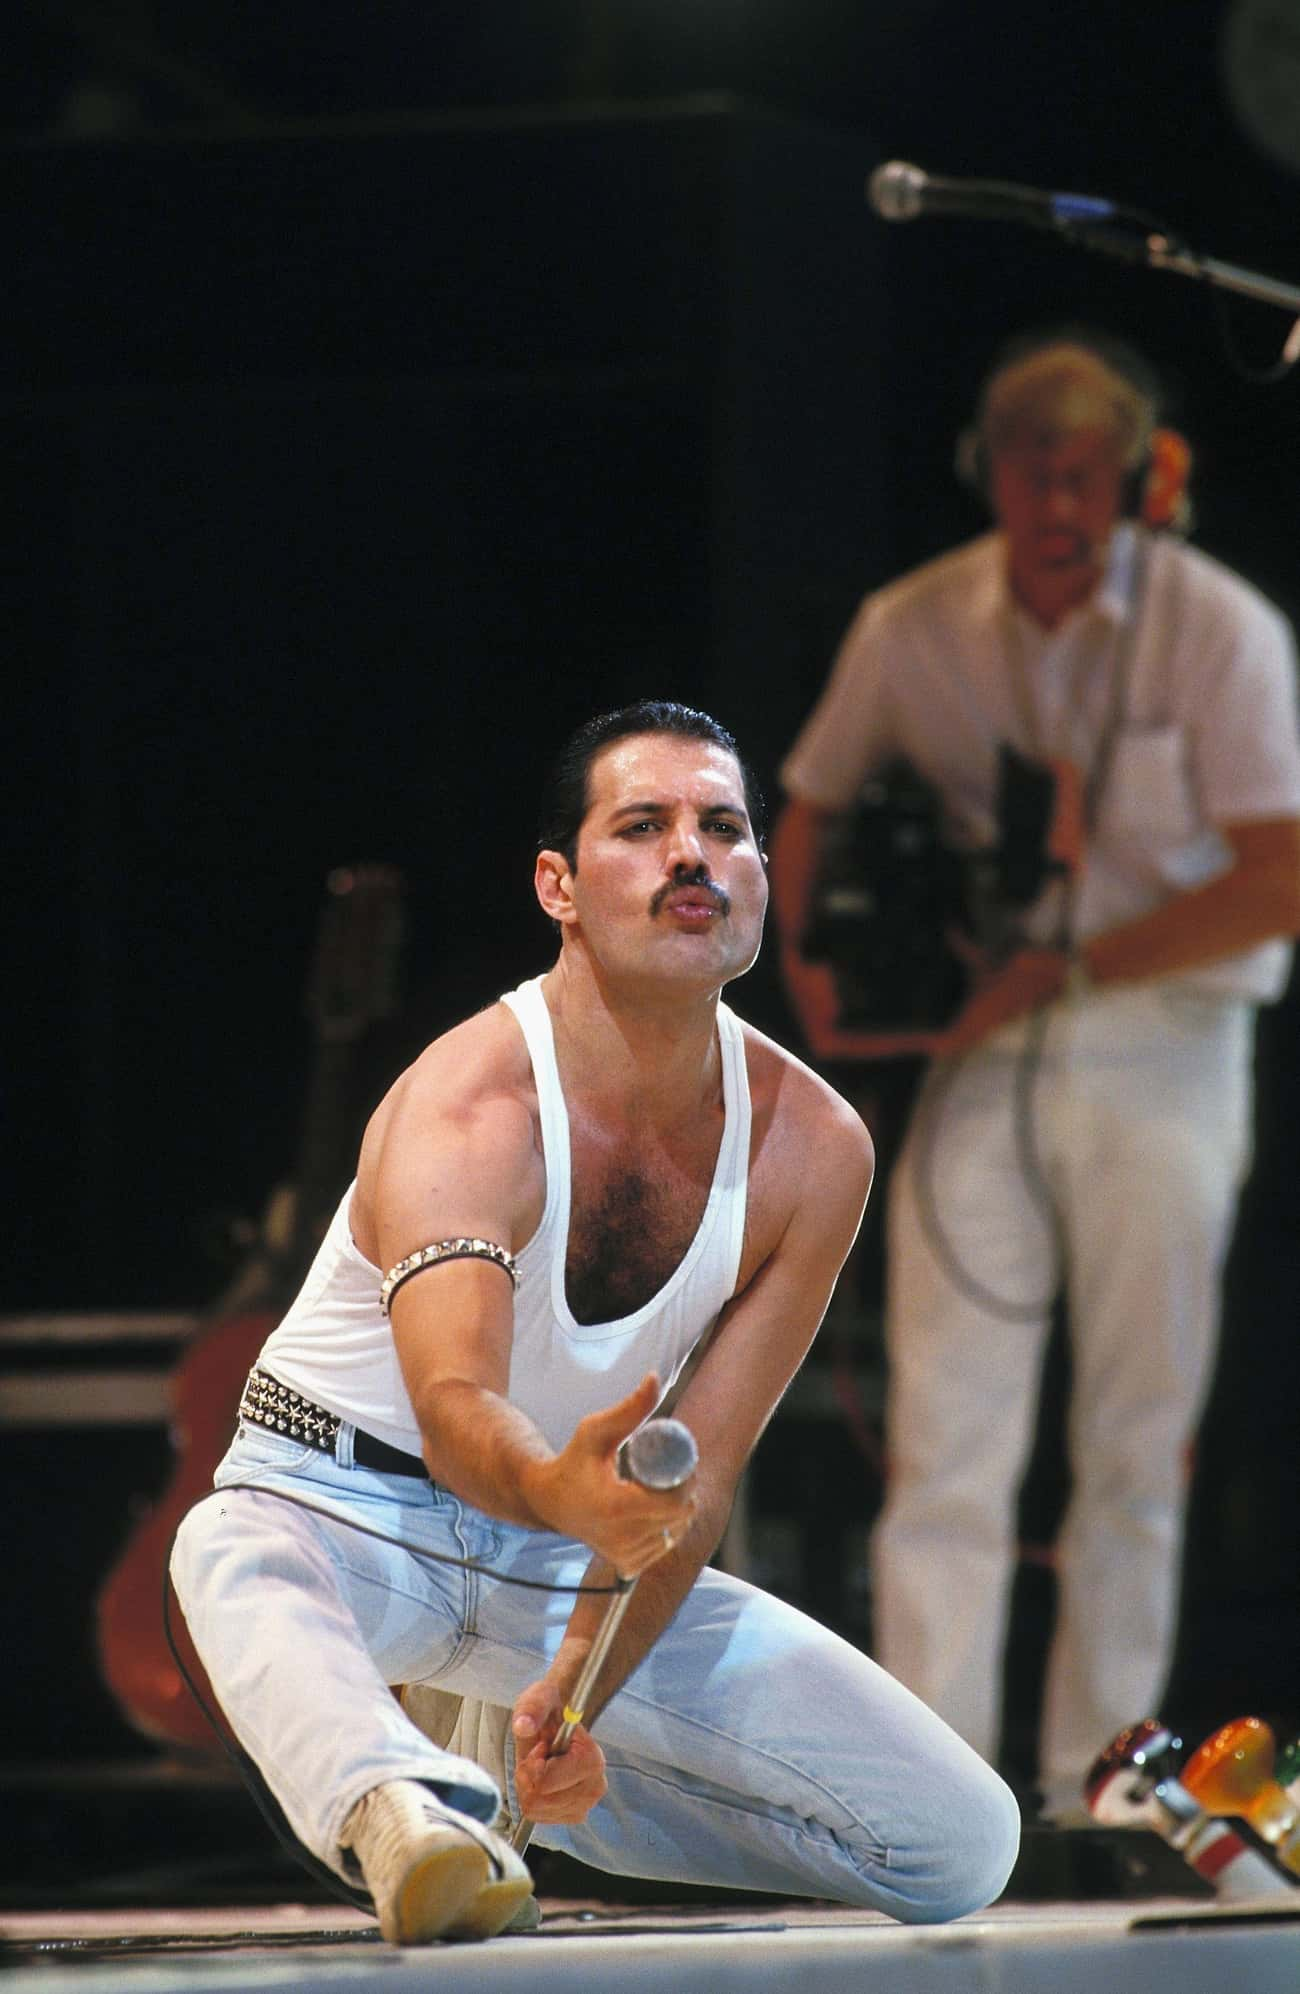 Queen Launched Their Magic Tour In June 1986